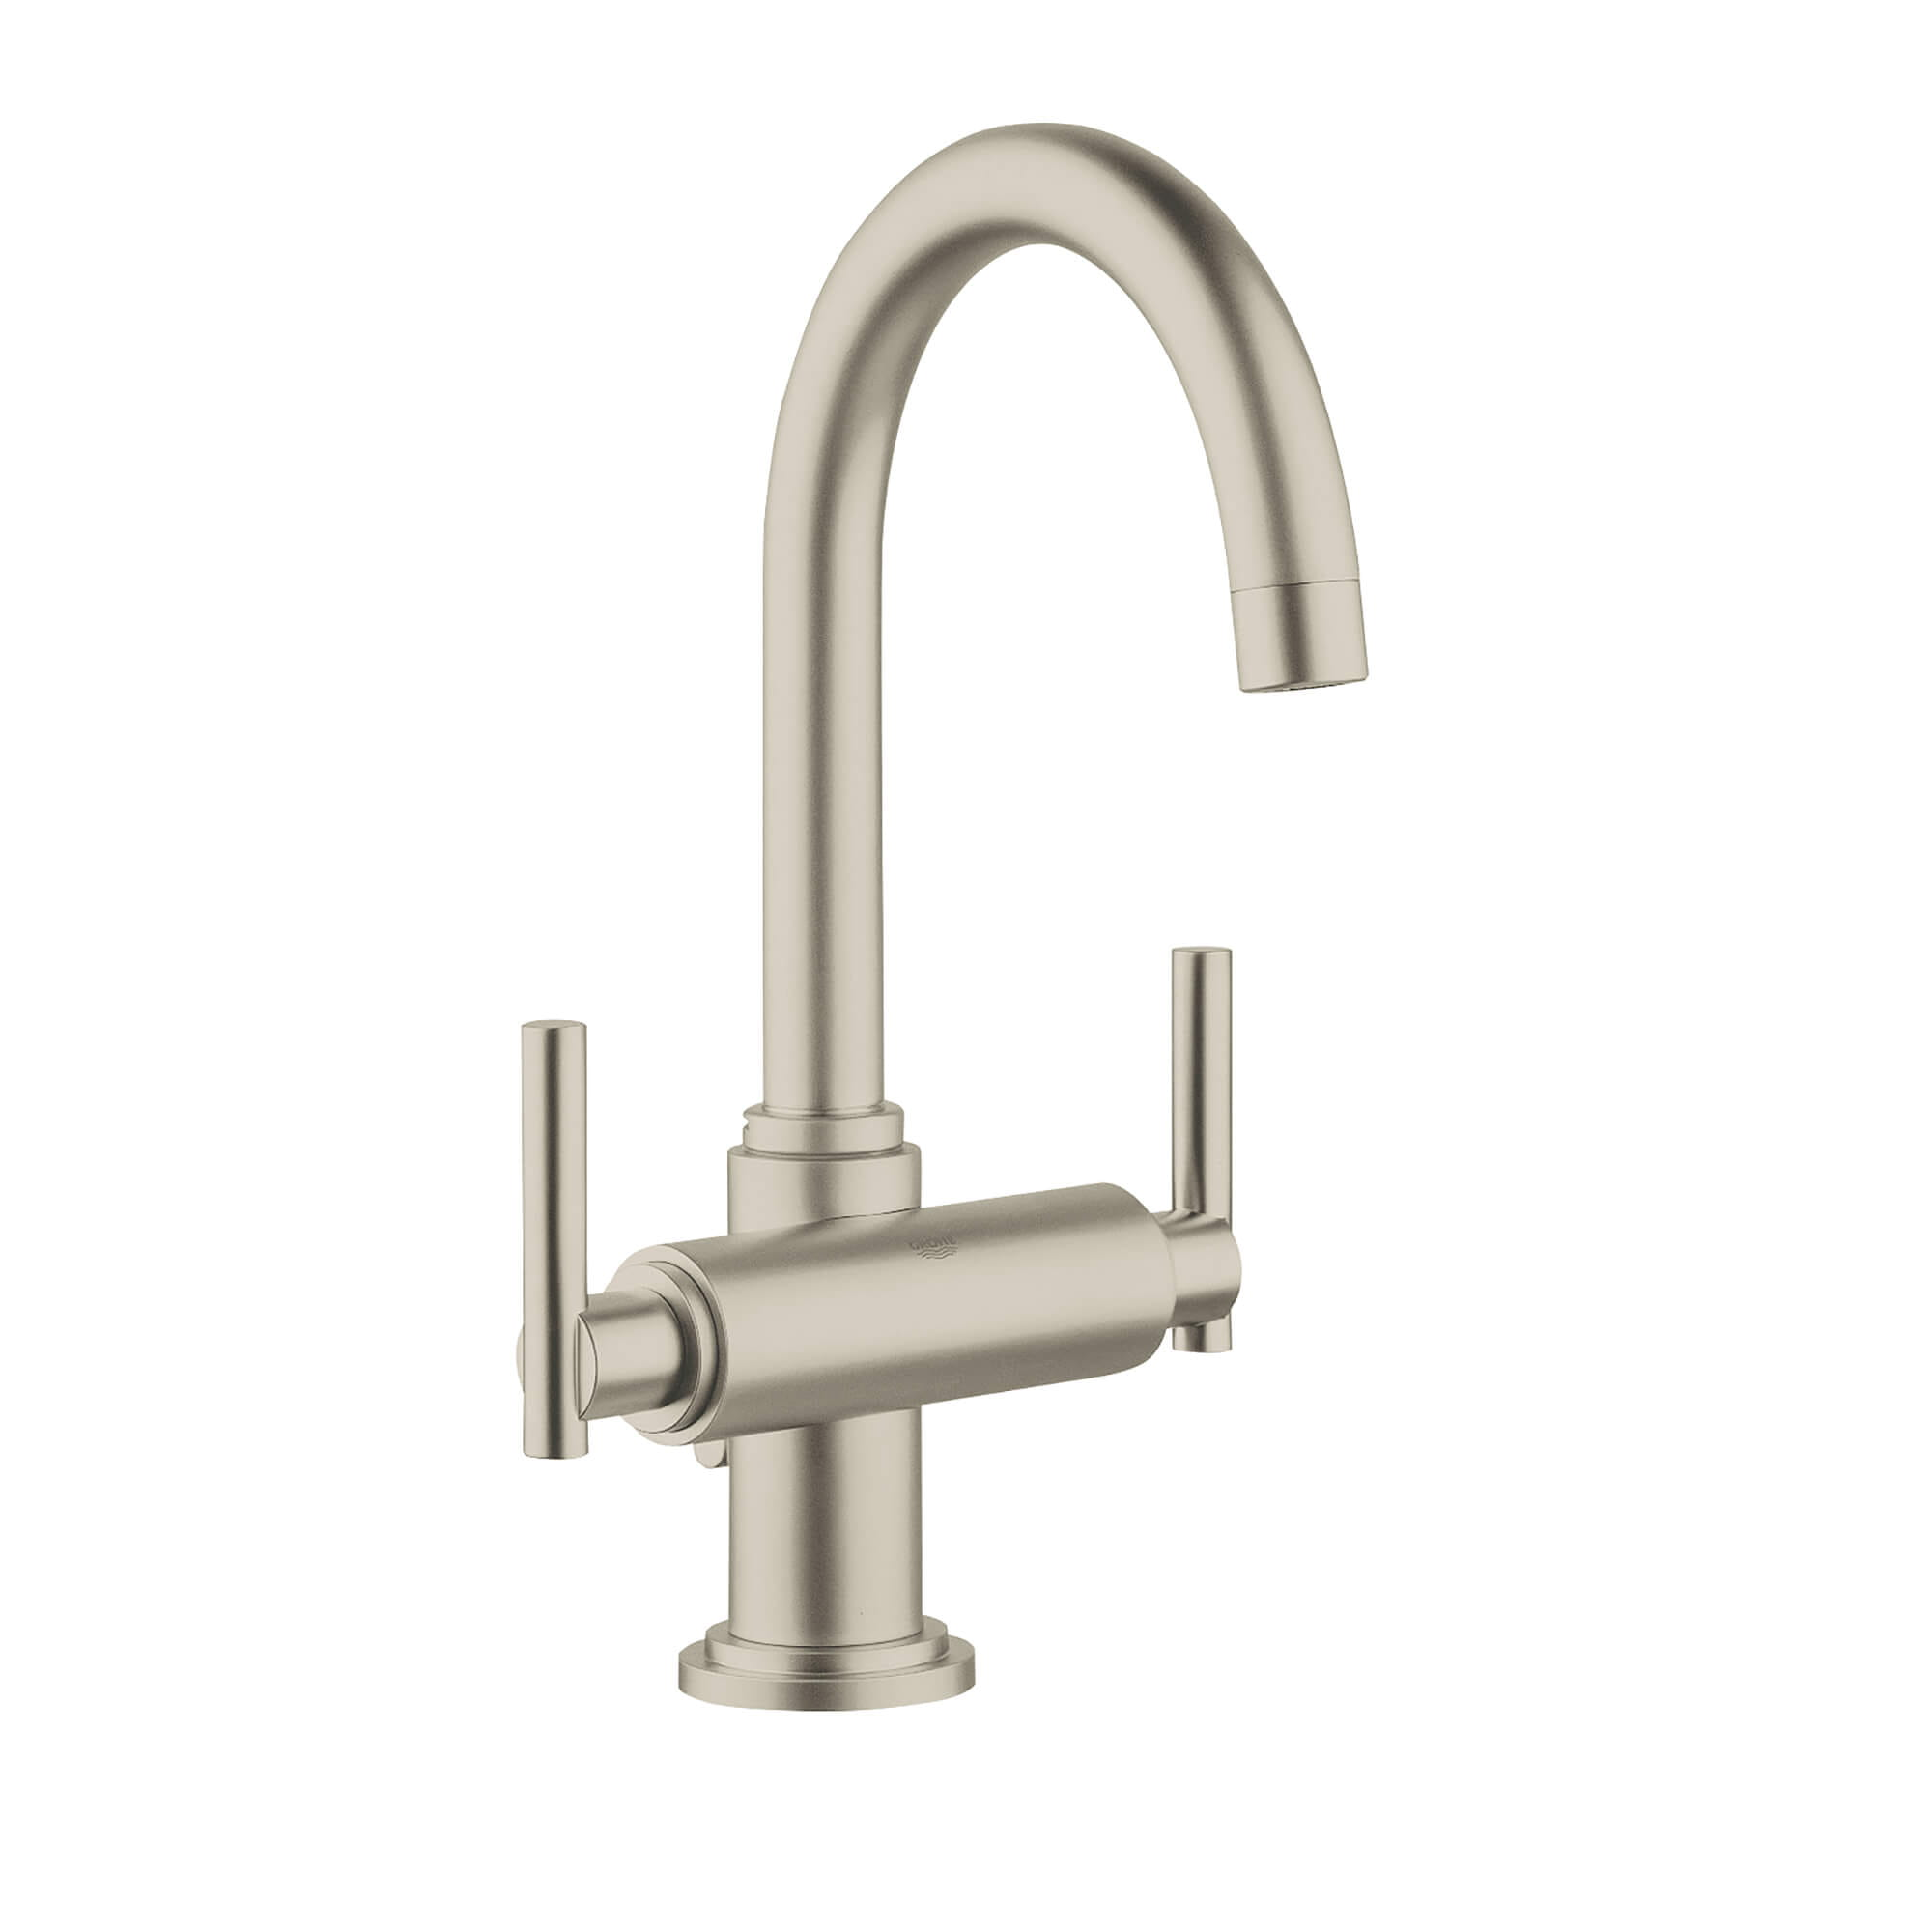 Manettes leviers la paire GROHE BRUSHED NICKEL